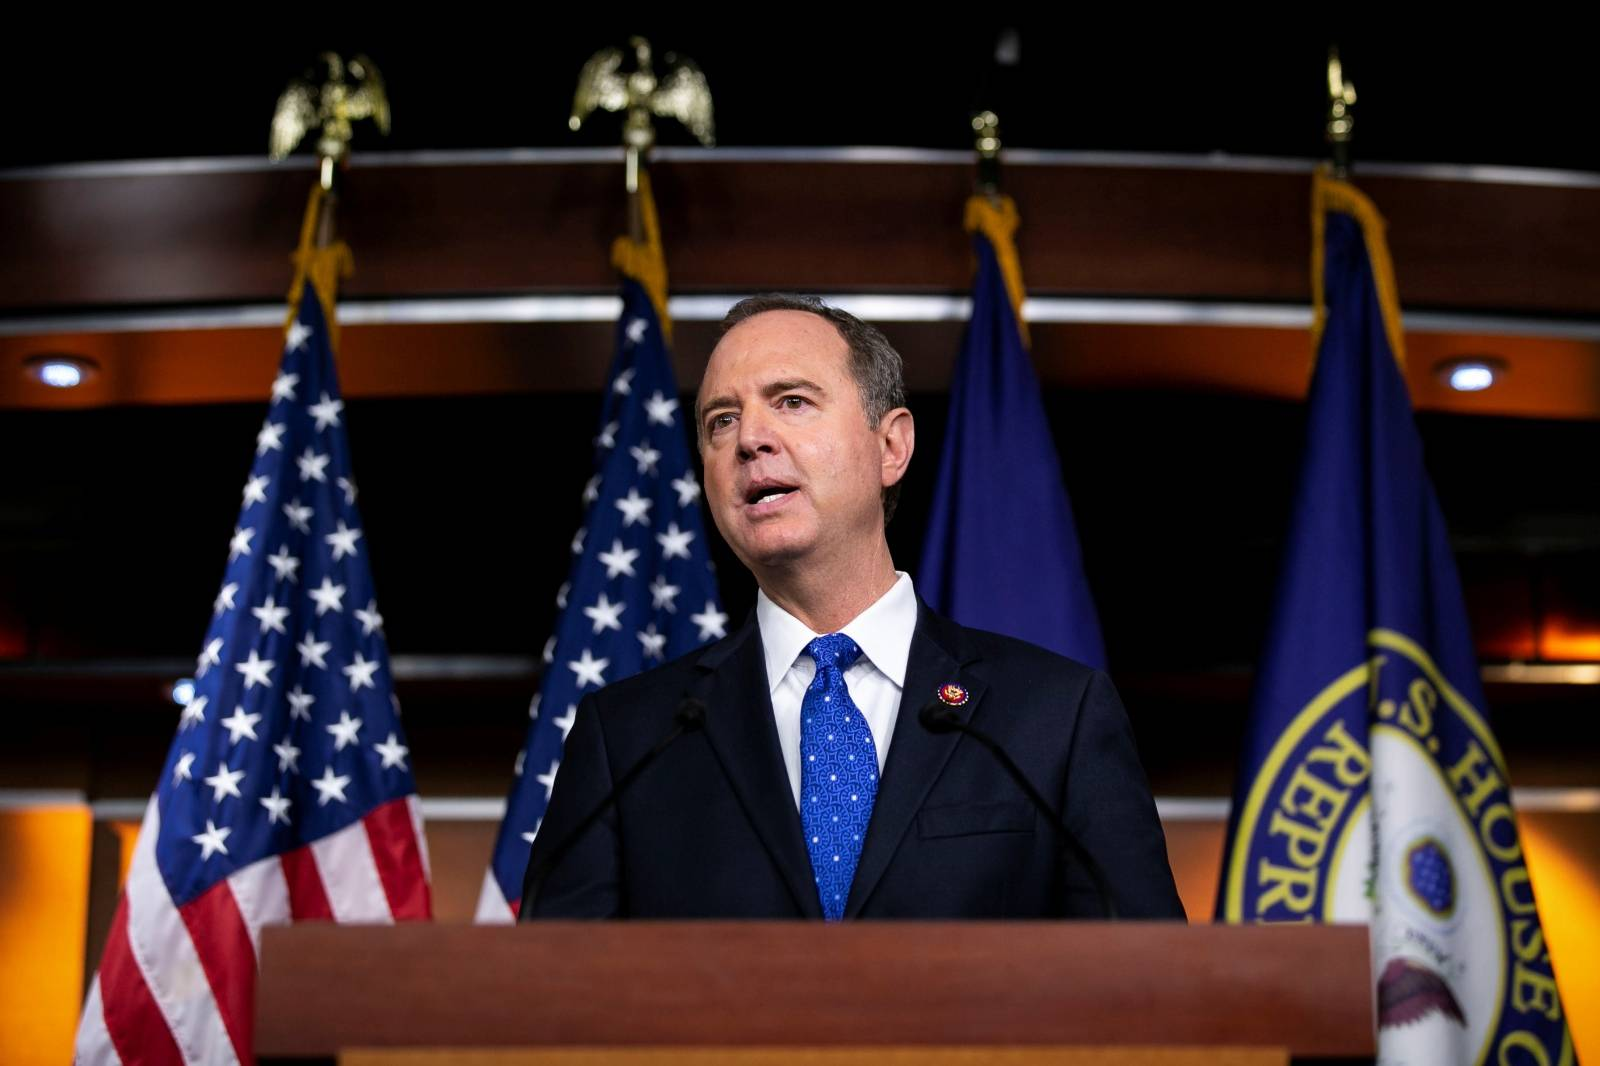 U.S. House Intelligence Committee Chairman Adam Schiff (D-CA) speaks during a news conference at the U.S. Capitol